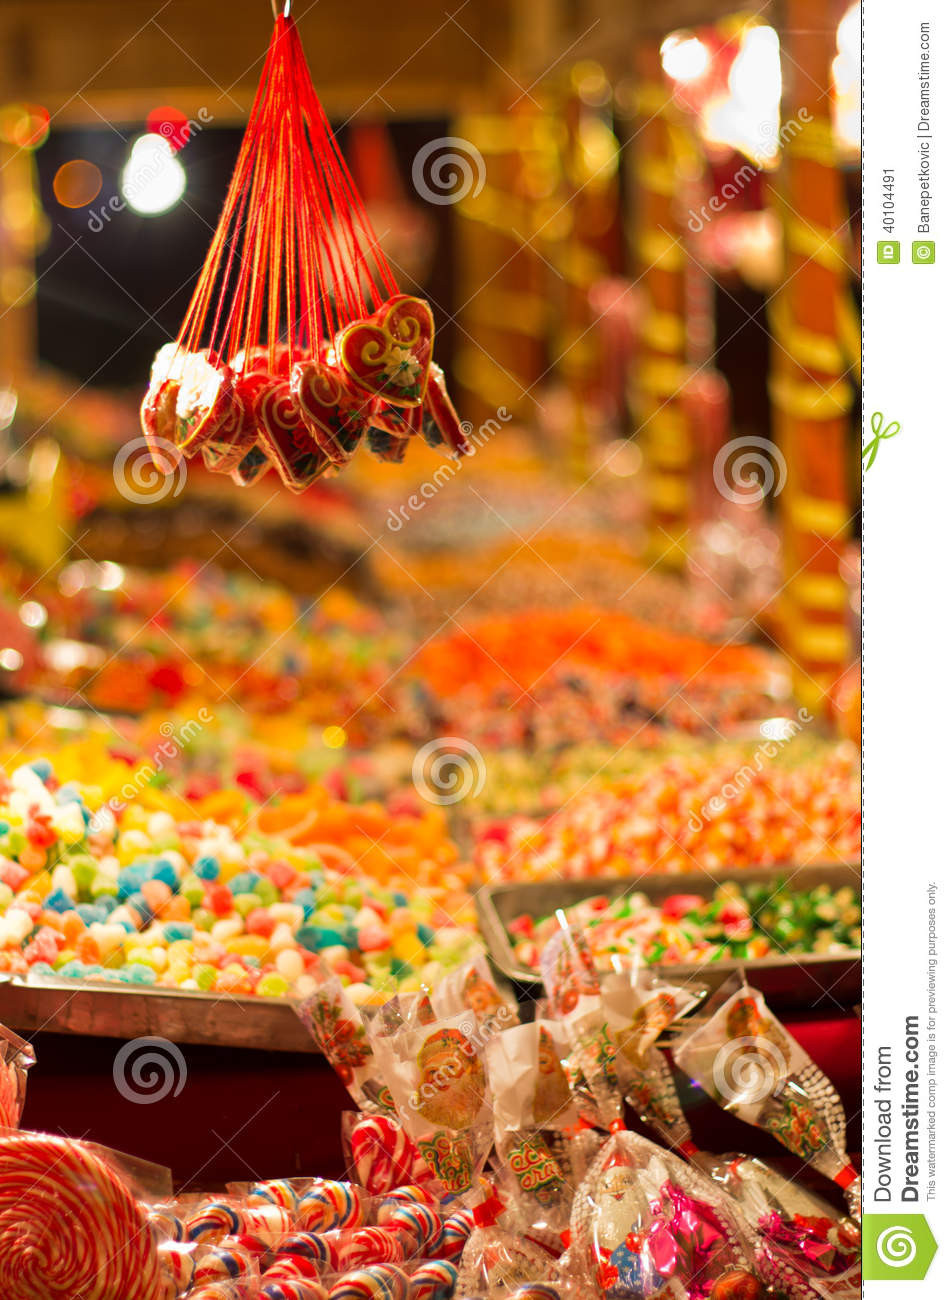 Christmas Candy Store  Christmas Candy Store The Local Square Stock